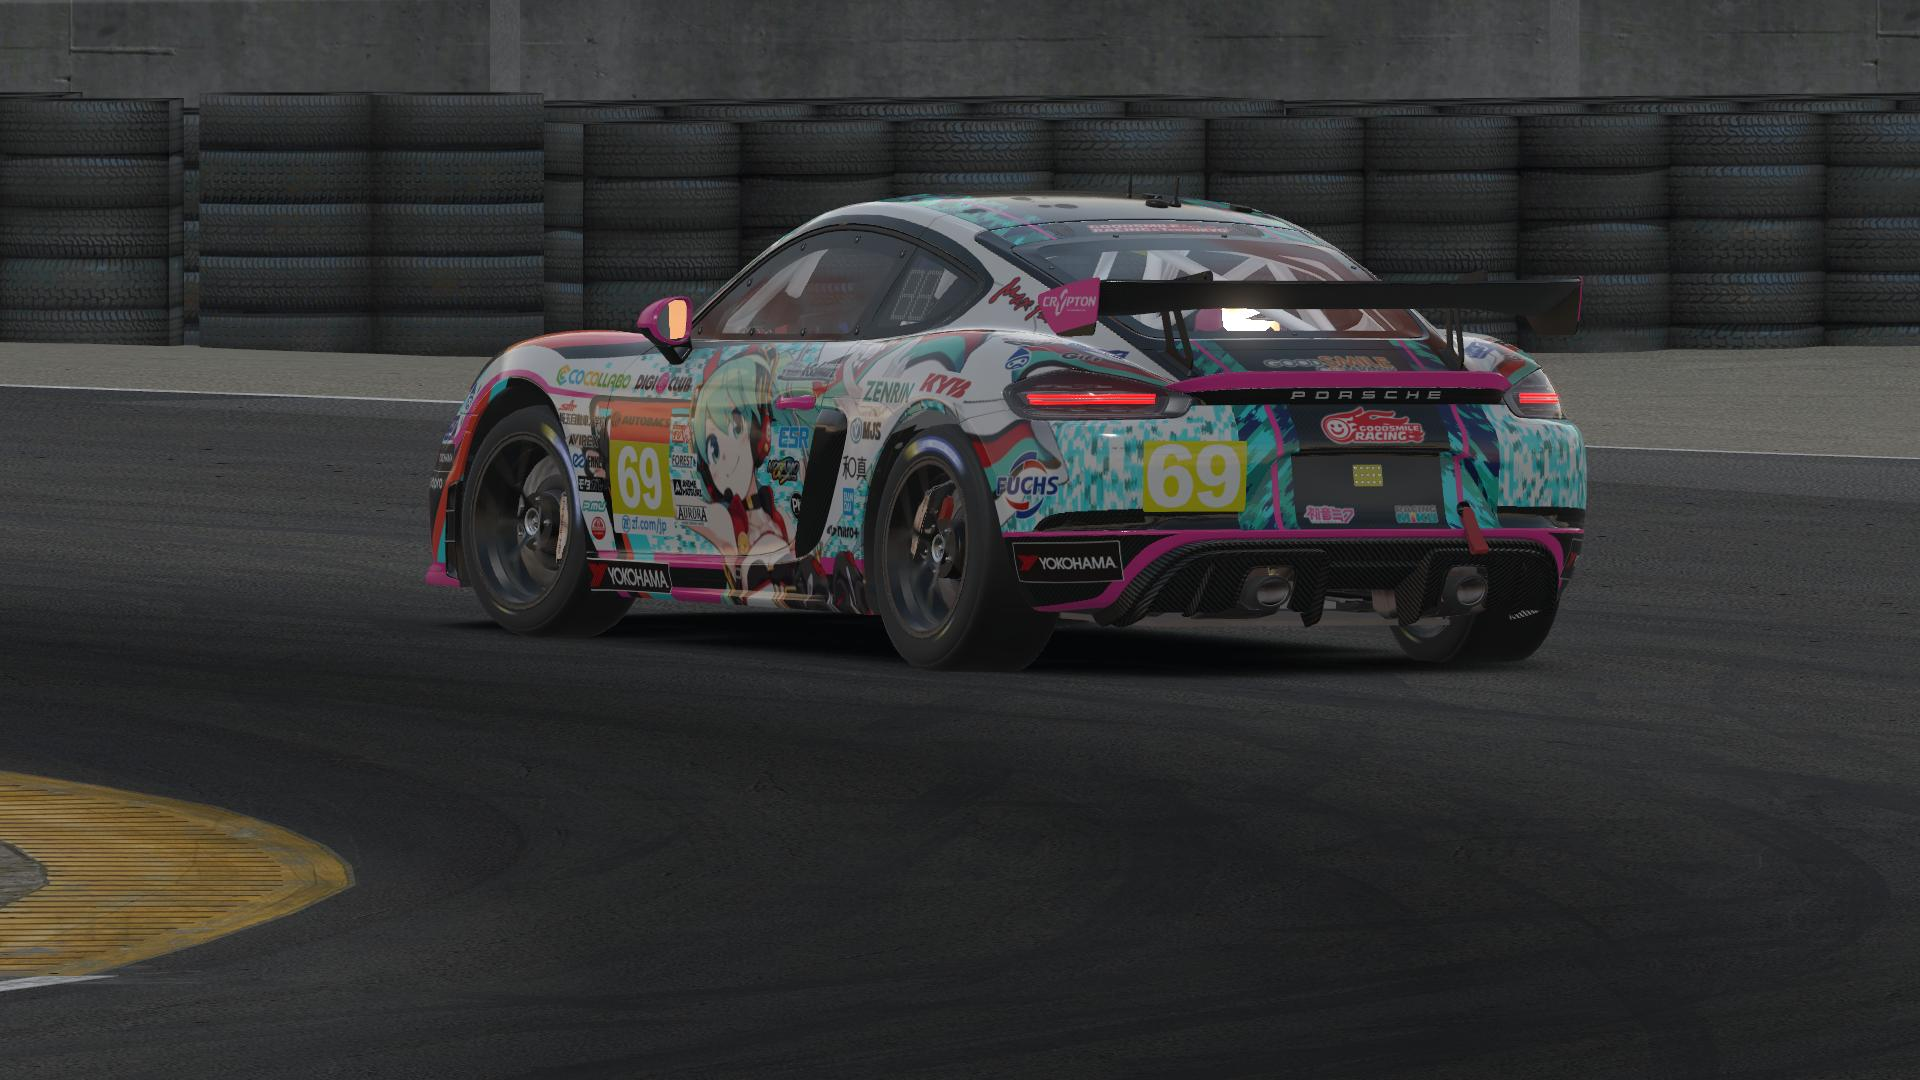 Preview of Porche 718 GT4 - Goodsmile Racing Hatsune Miku by Jake Gaudet